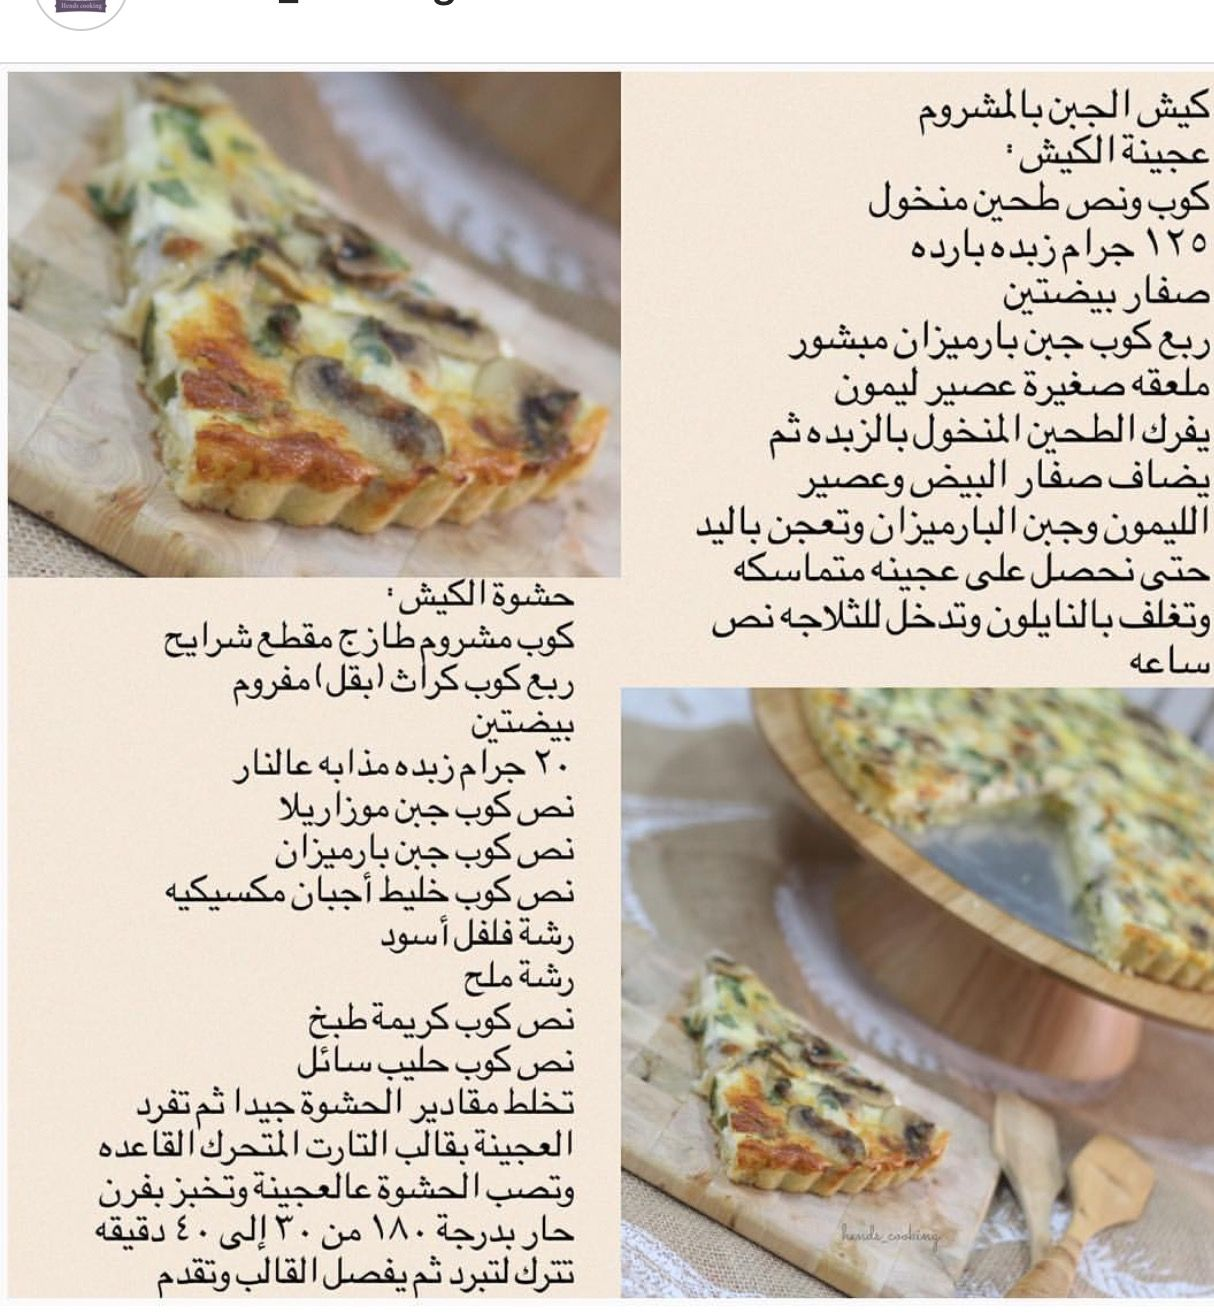 Pin By Noora On طبخ Food Recipes Cooking